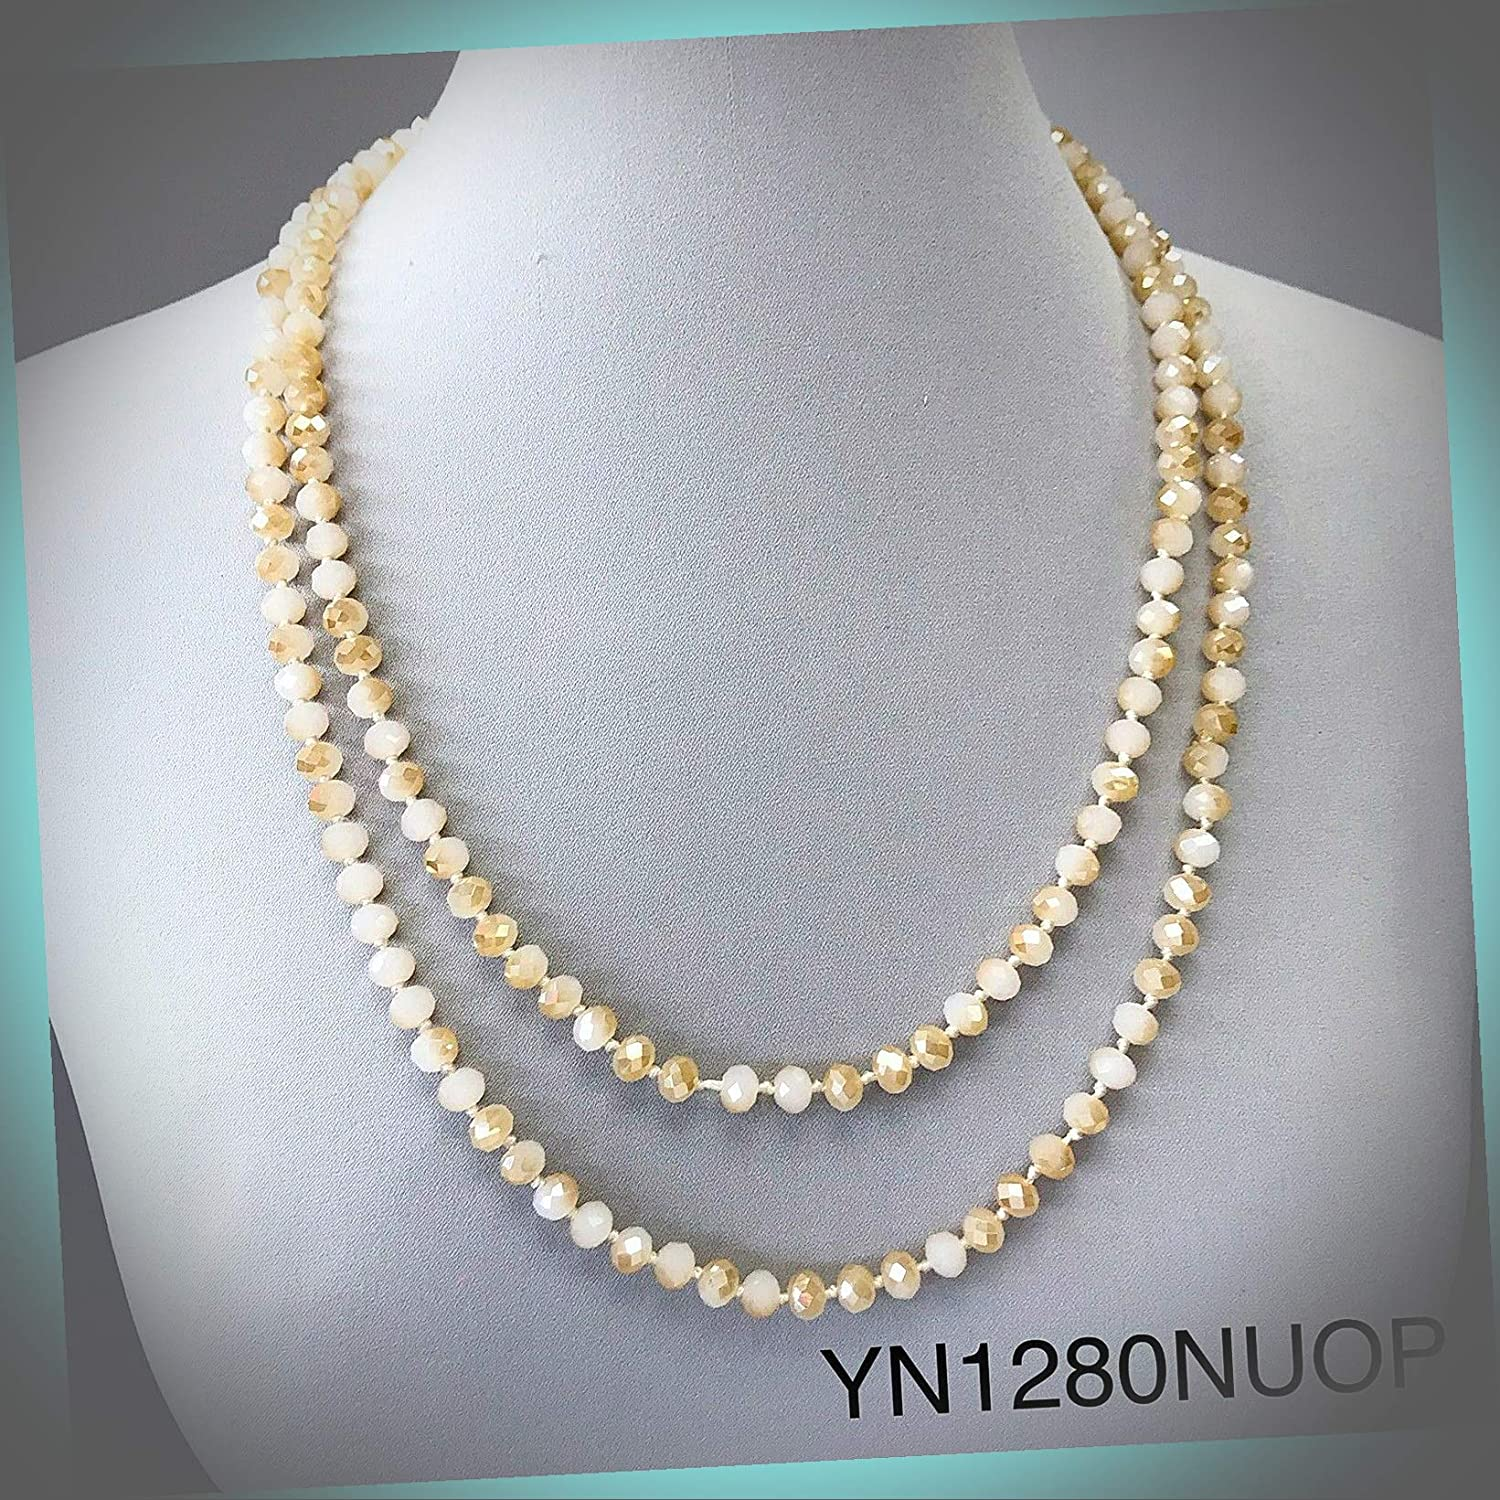 New Long Wrap Around Knotted Nude Opal Ball Beaded Style Statement Wonderful Necklace ALI-N1502E Gift for Women Girls Charm Necklace by InnaBest